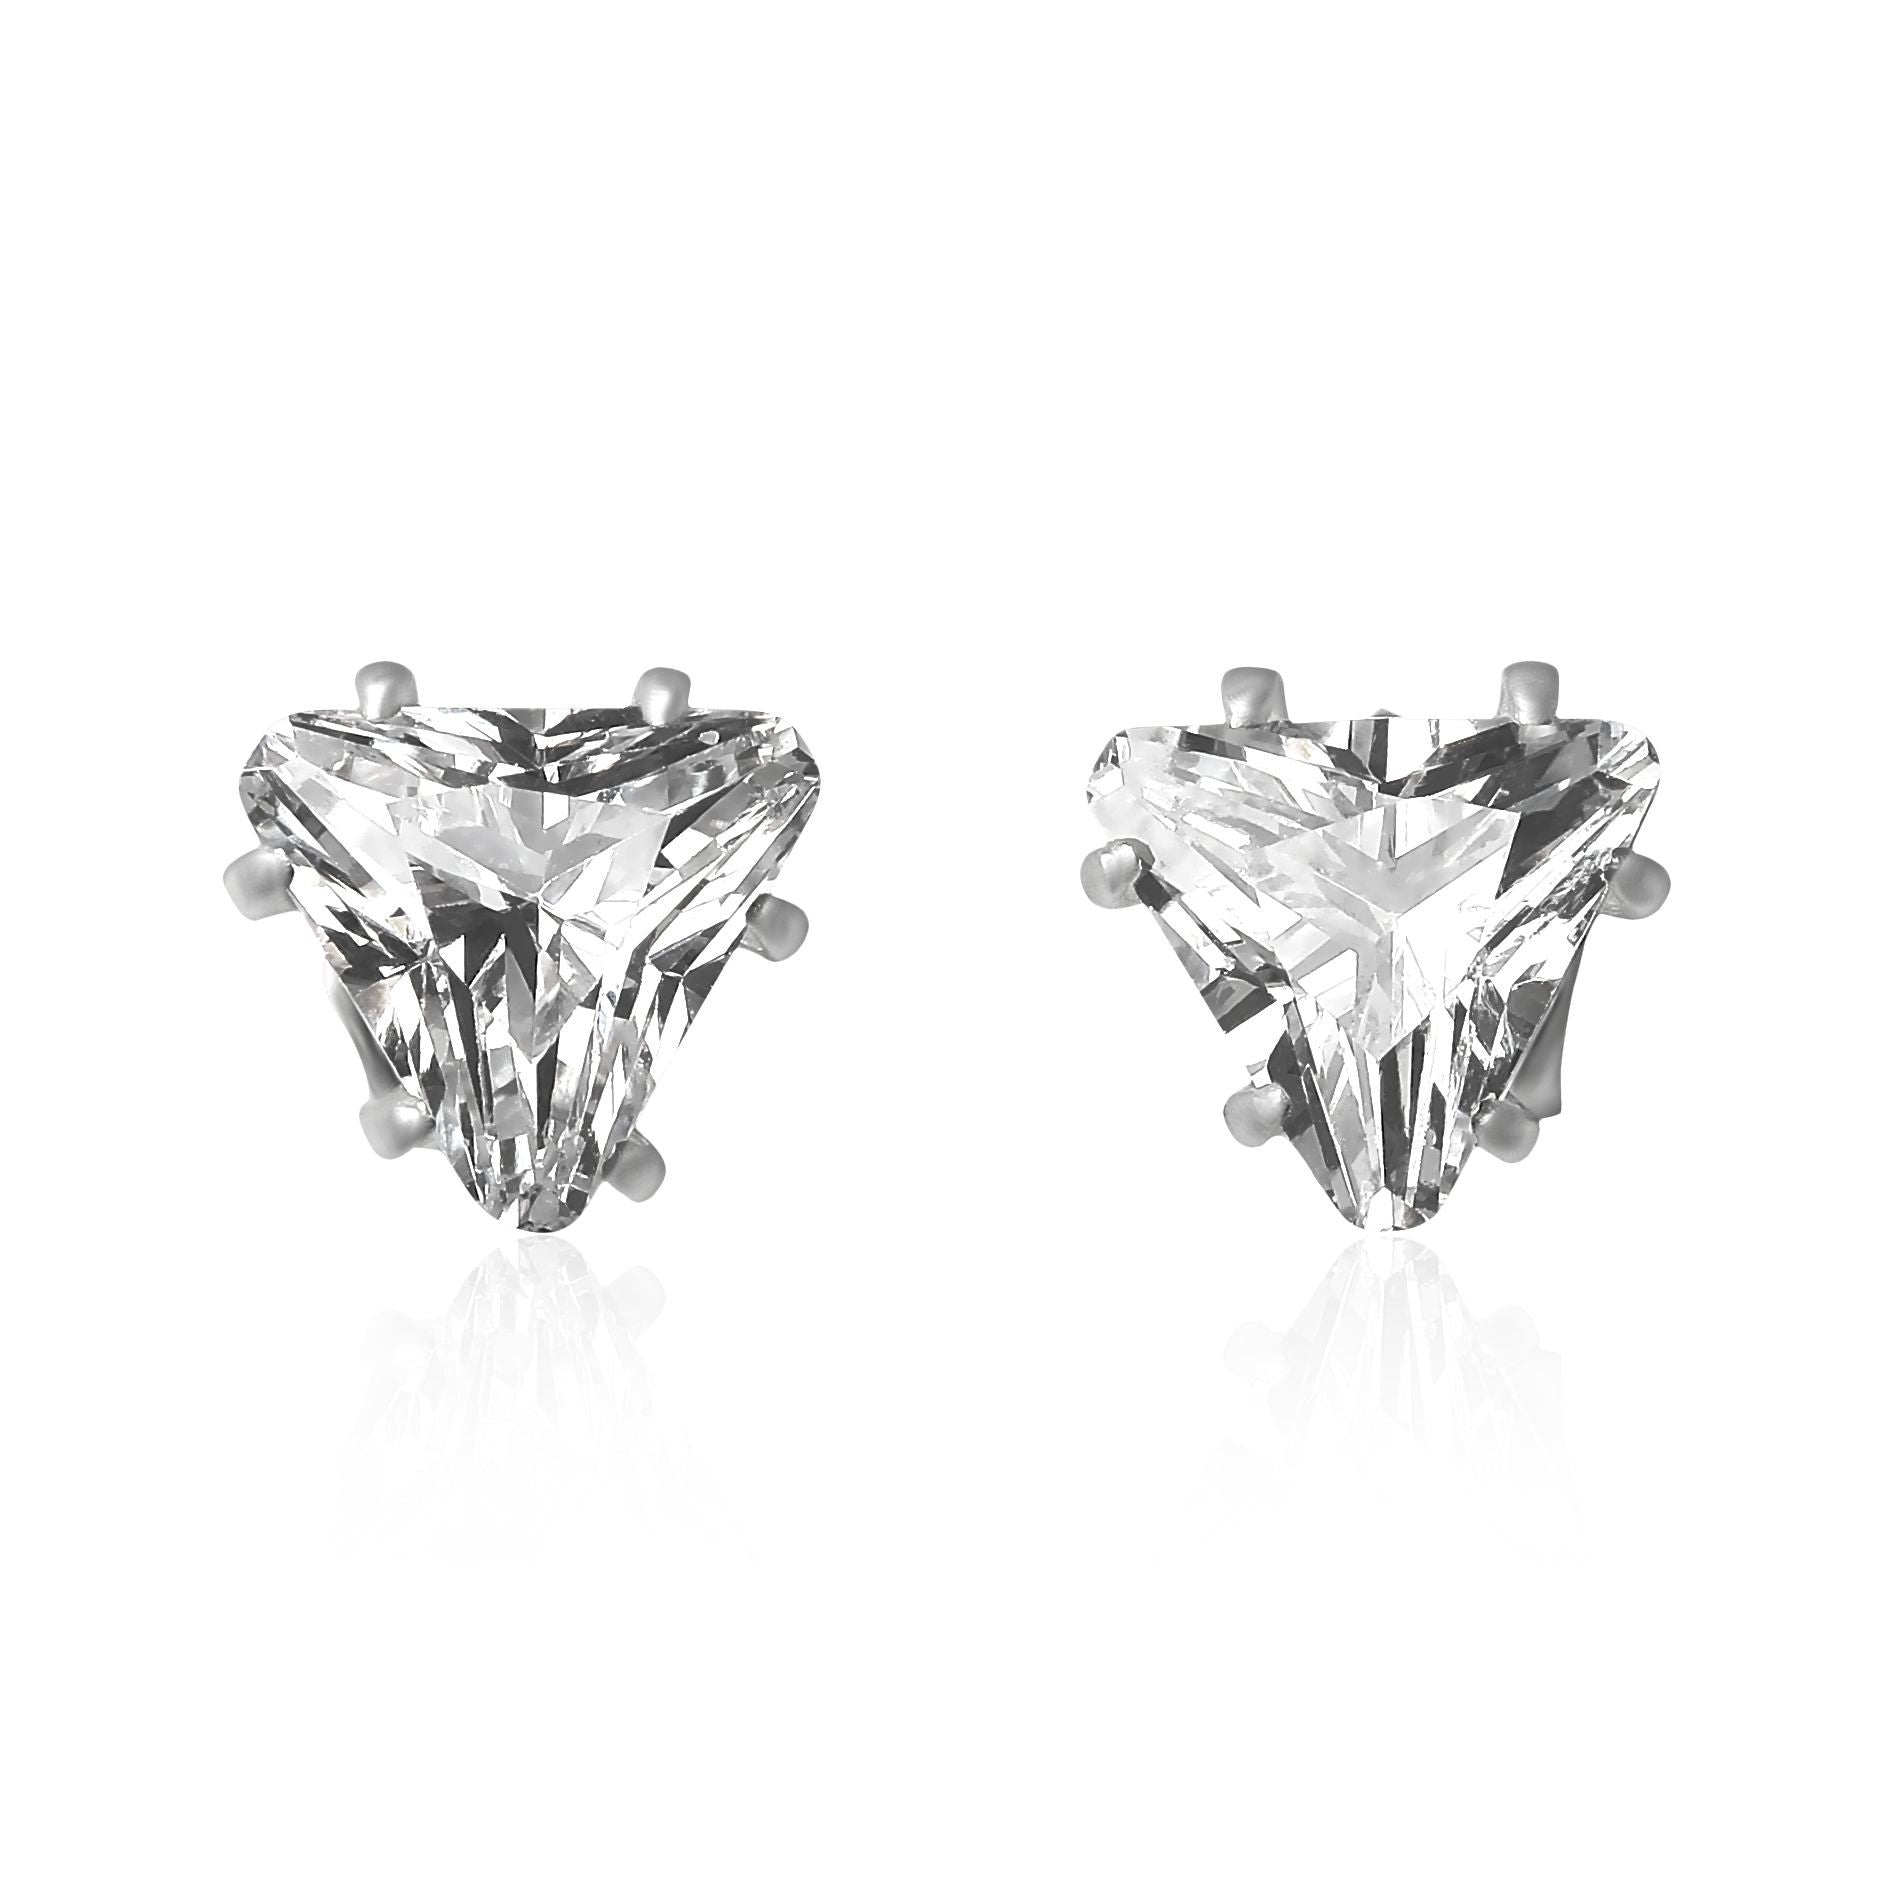 EZ-2290 Triangle CZ Stud Earrings 7mm | Teeda